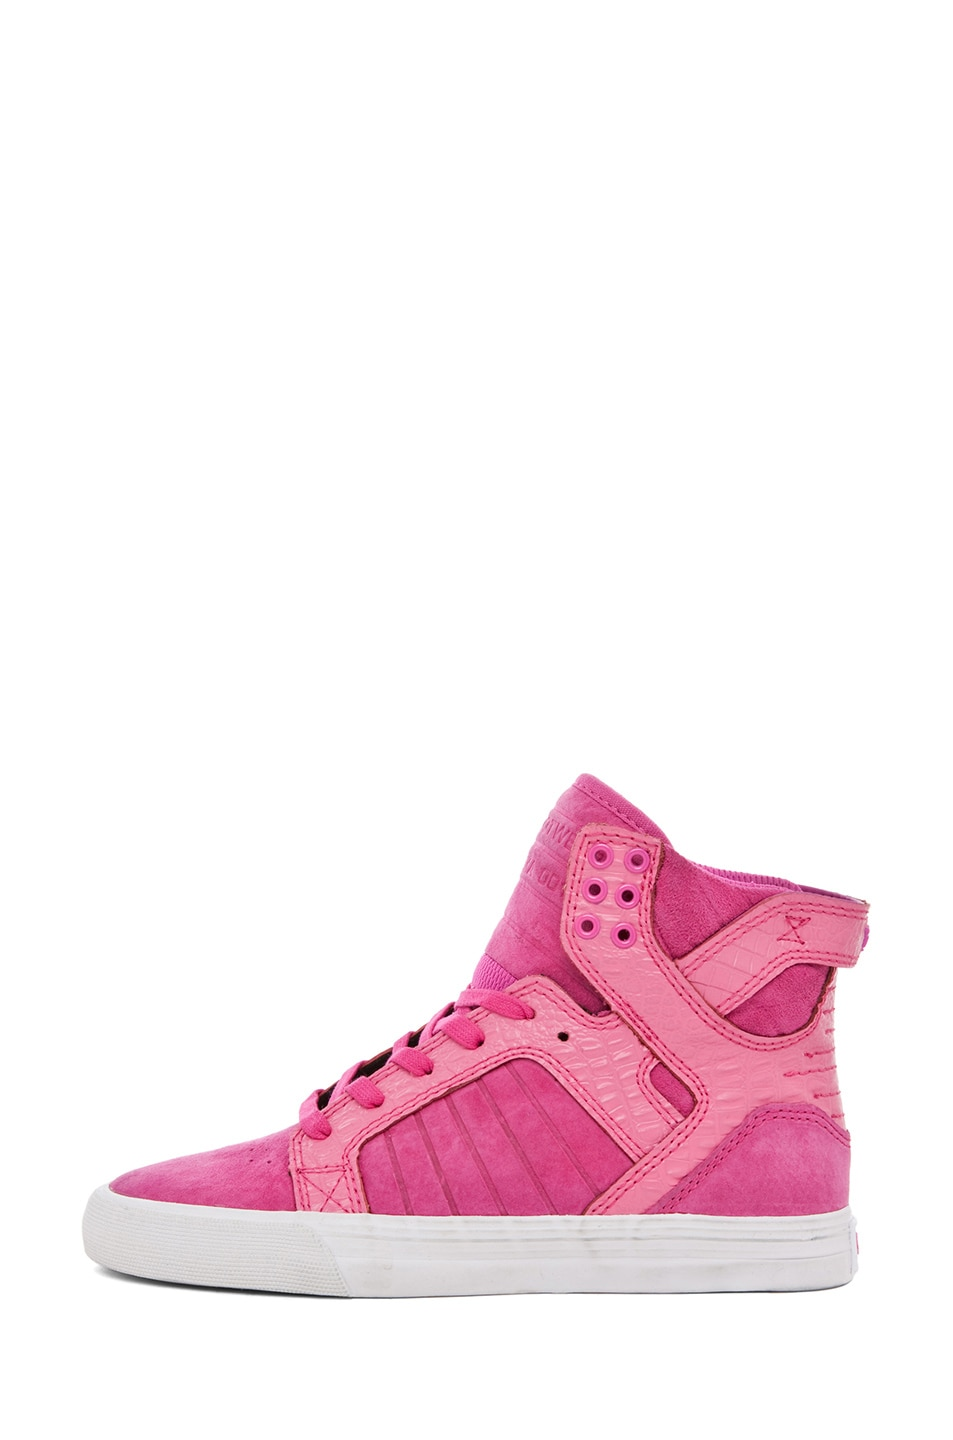 Image 1 of Supra PINK PARTY EXCLUSIVE Skytop Sneaker in Pink